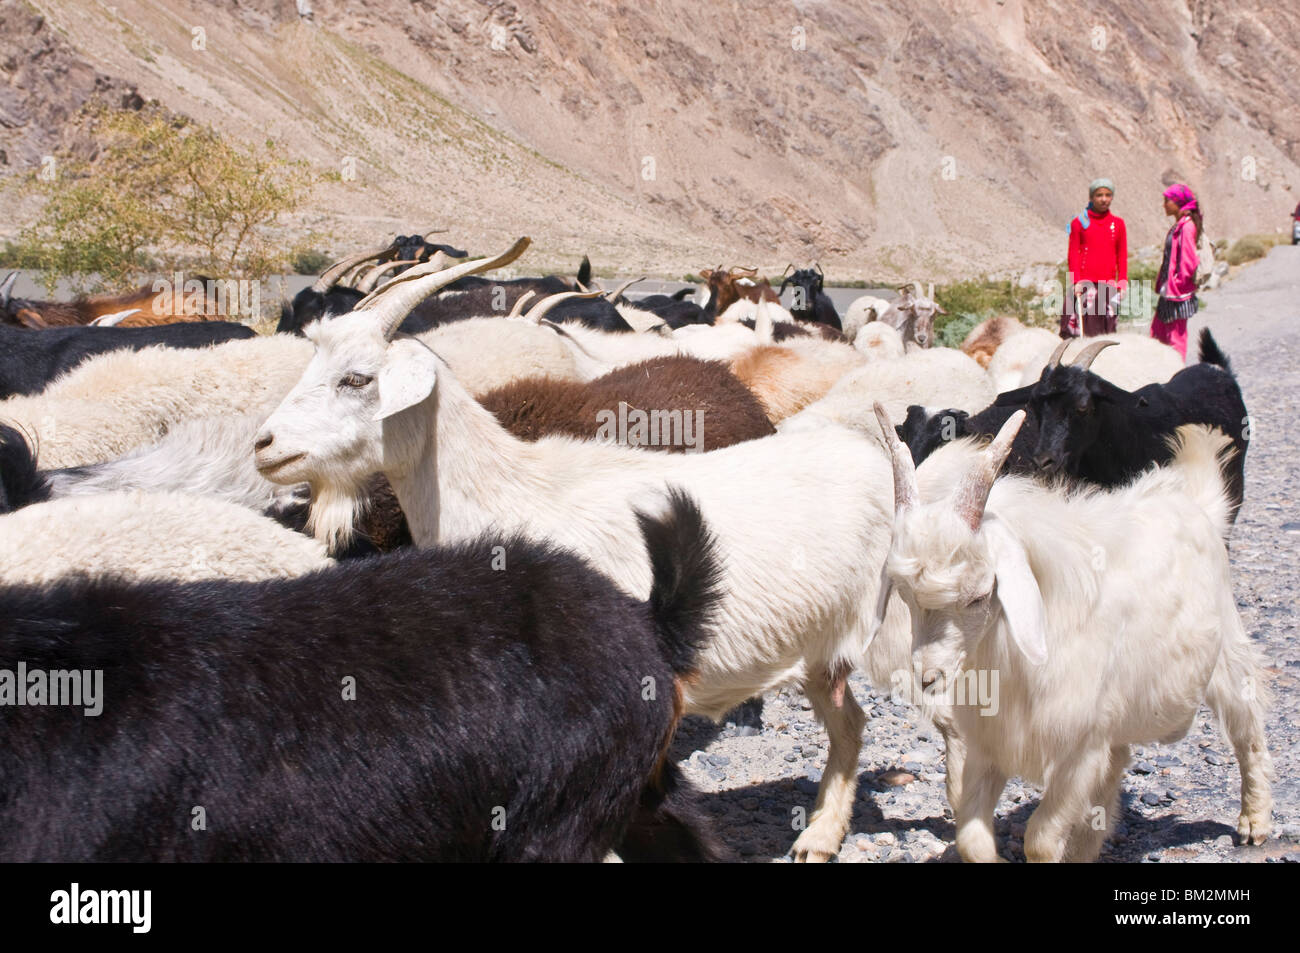 Two girls with herd of goats, Wakhan Valley, The Pamirs, Tajikistan - Stock Image